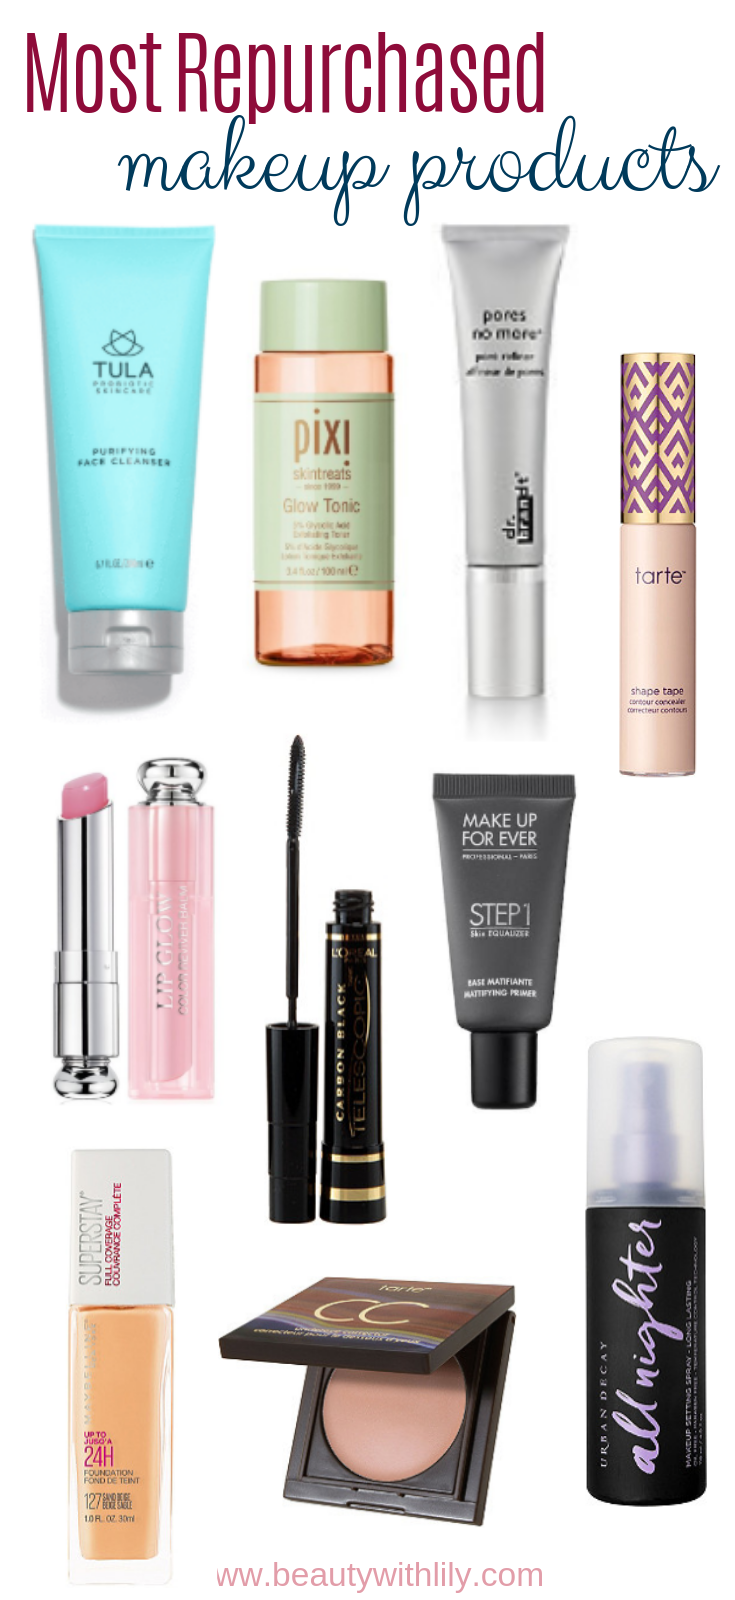 Most Repurchased Makeup Products // Holy Grail Makeup Products | Beauty With Lily